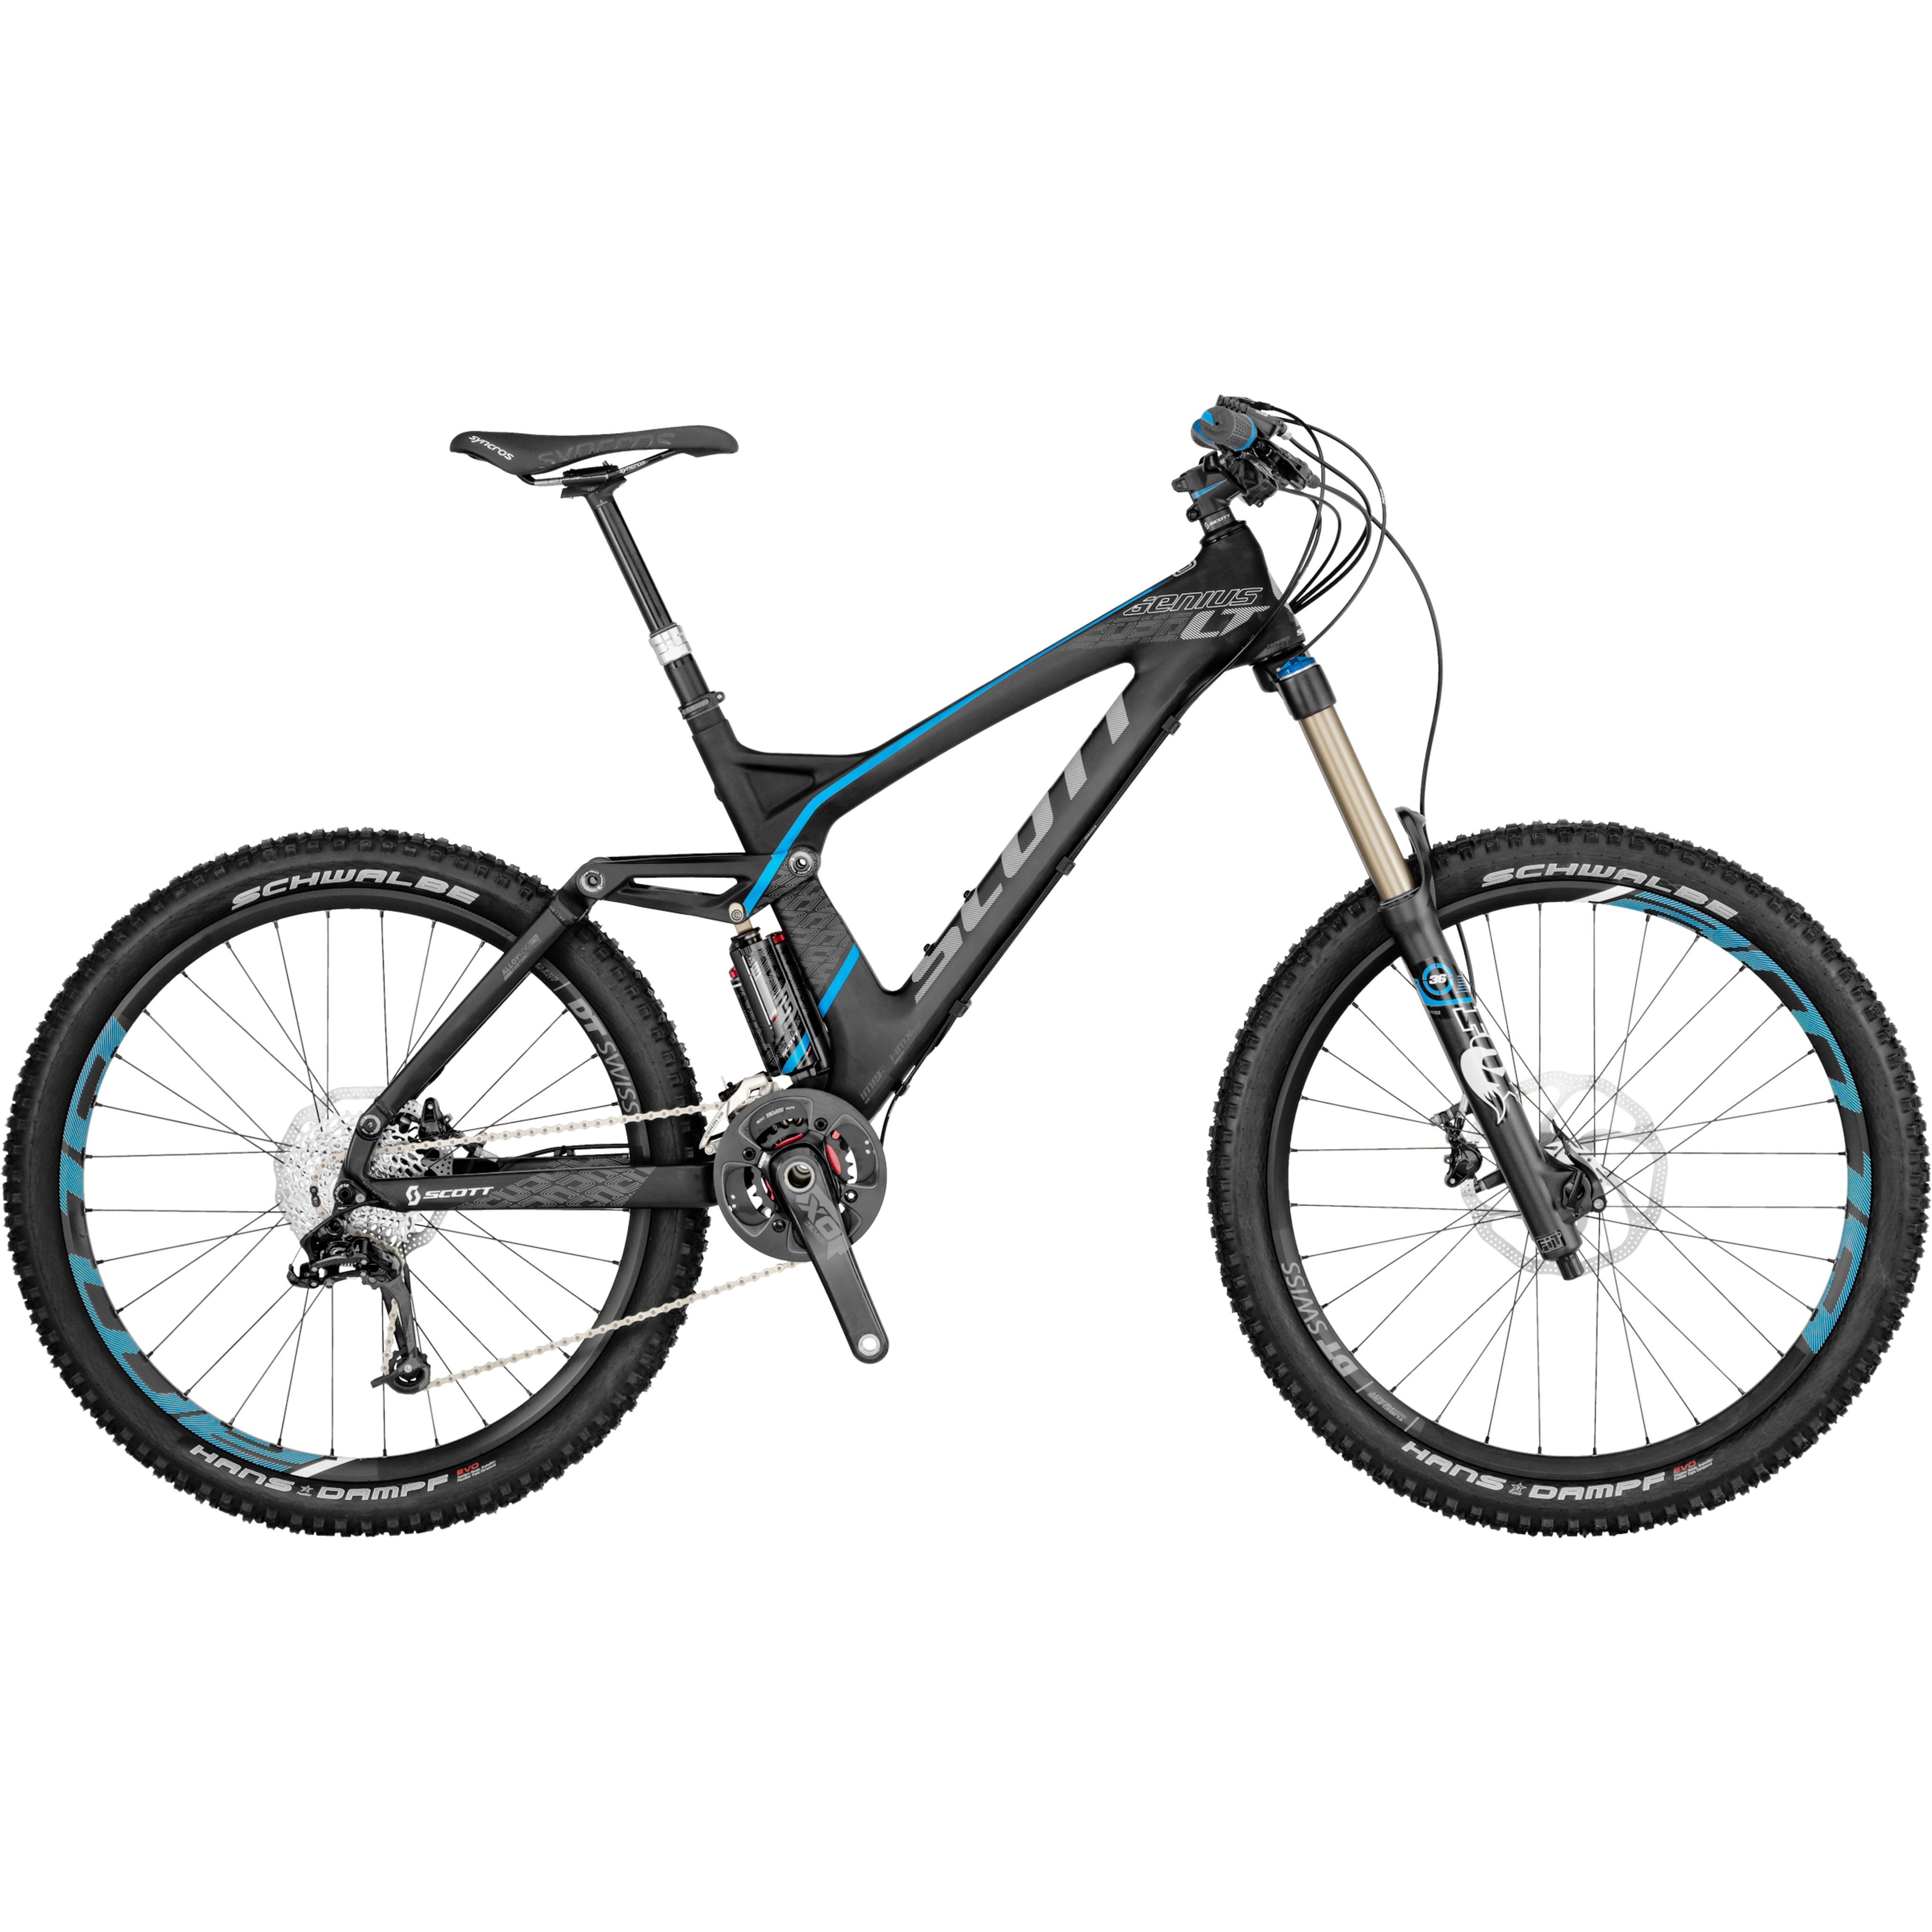 Cycle price in bangalore dating 9